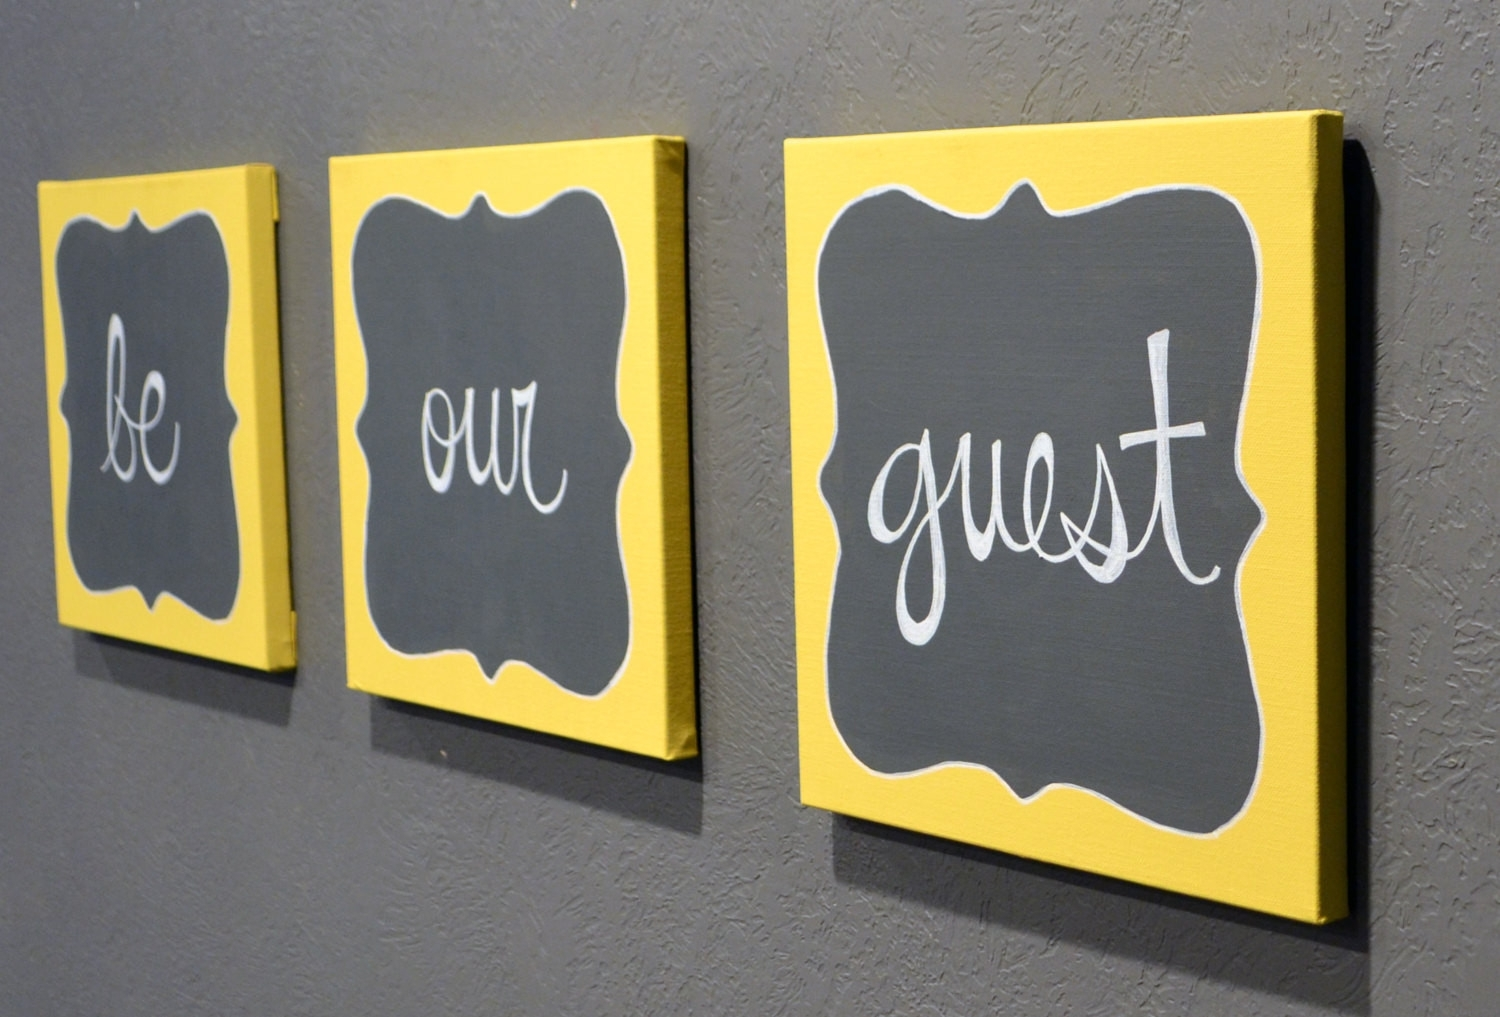 43 Lovely Yellow And Grey Wall Decor | Wall Decor Inspiration For Yellow And Gray Wall Art (View 18 of 20)